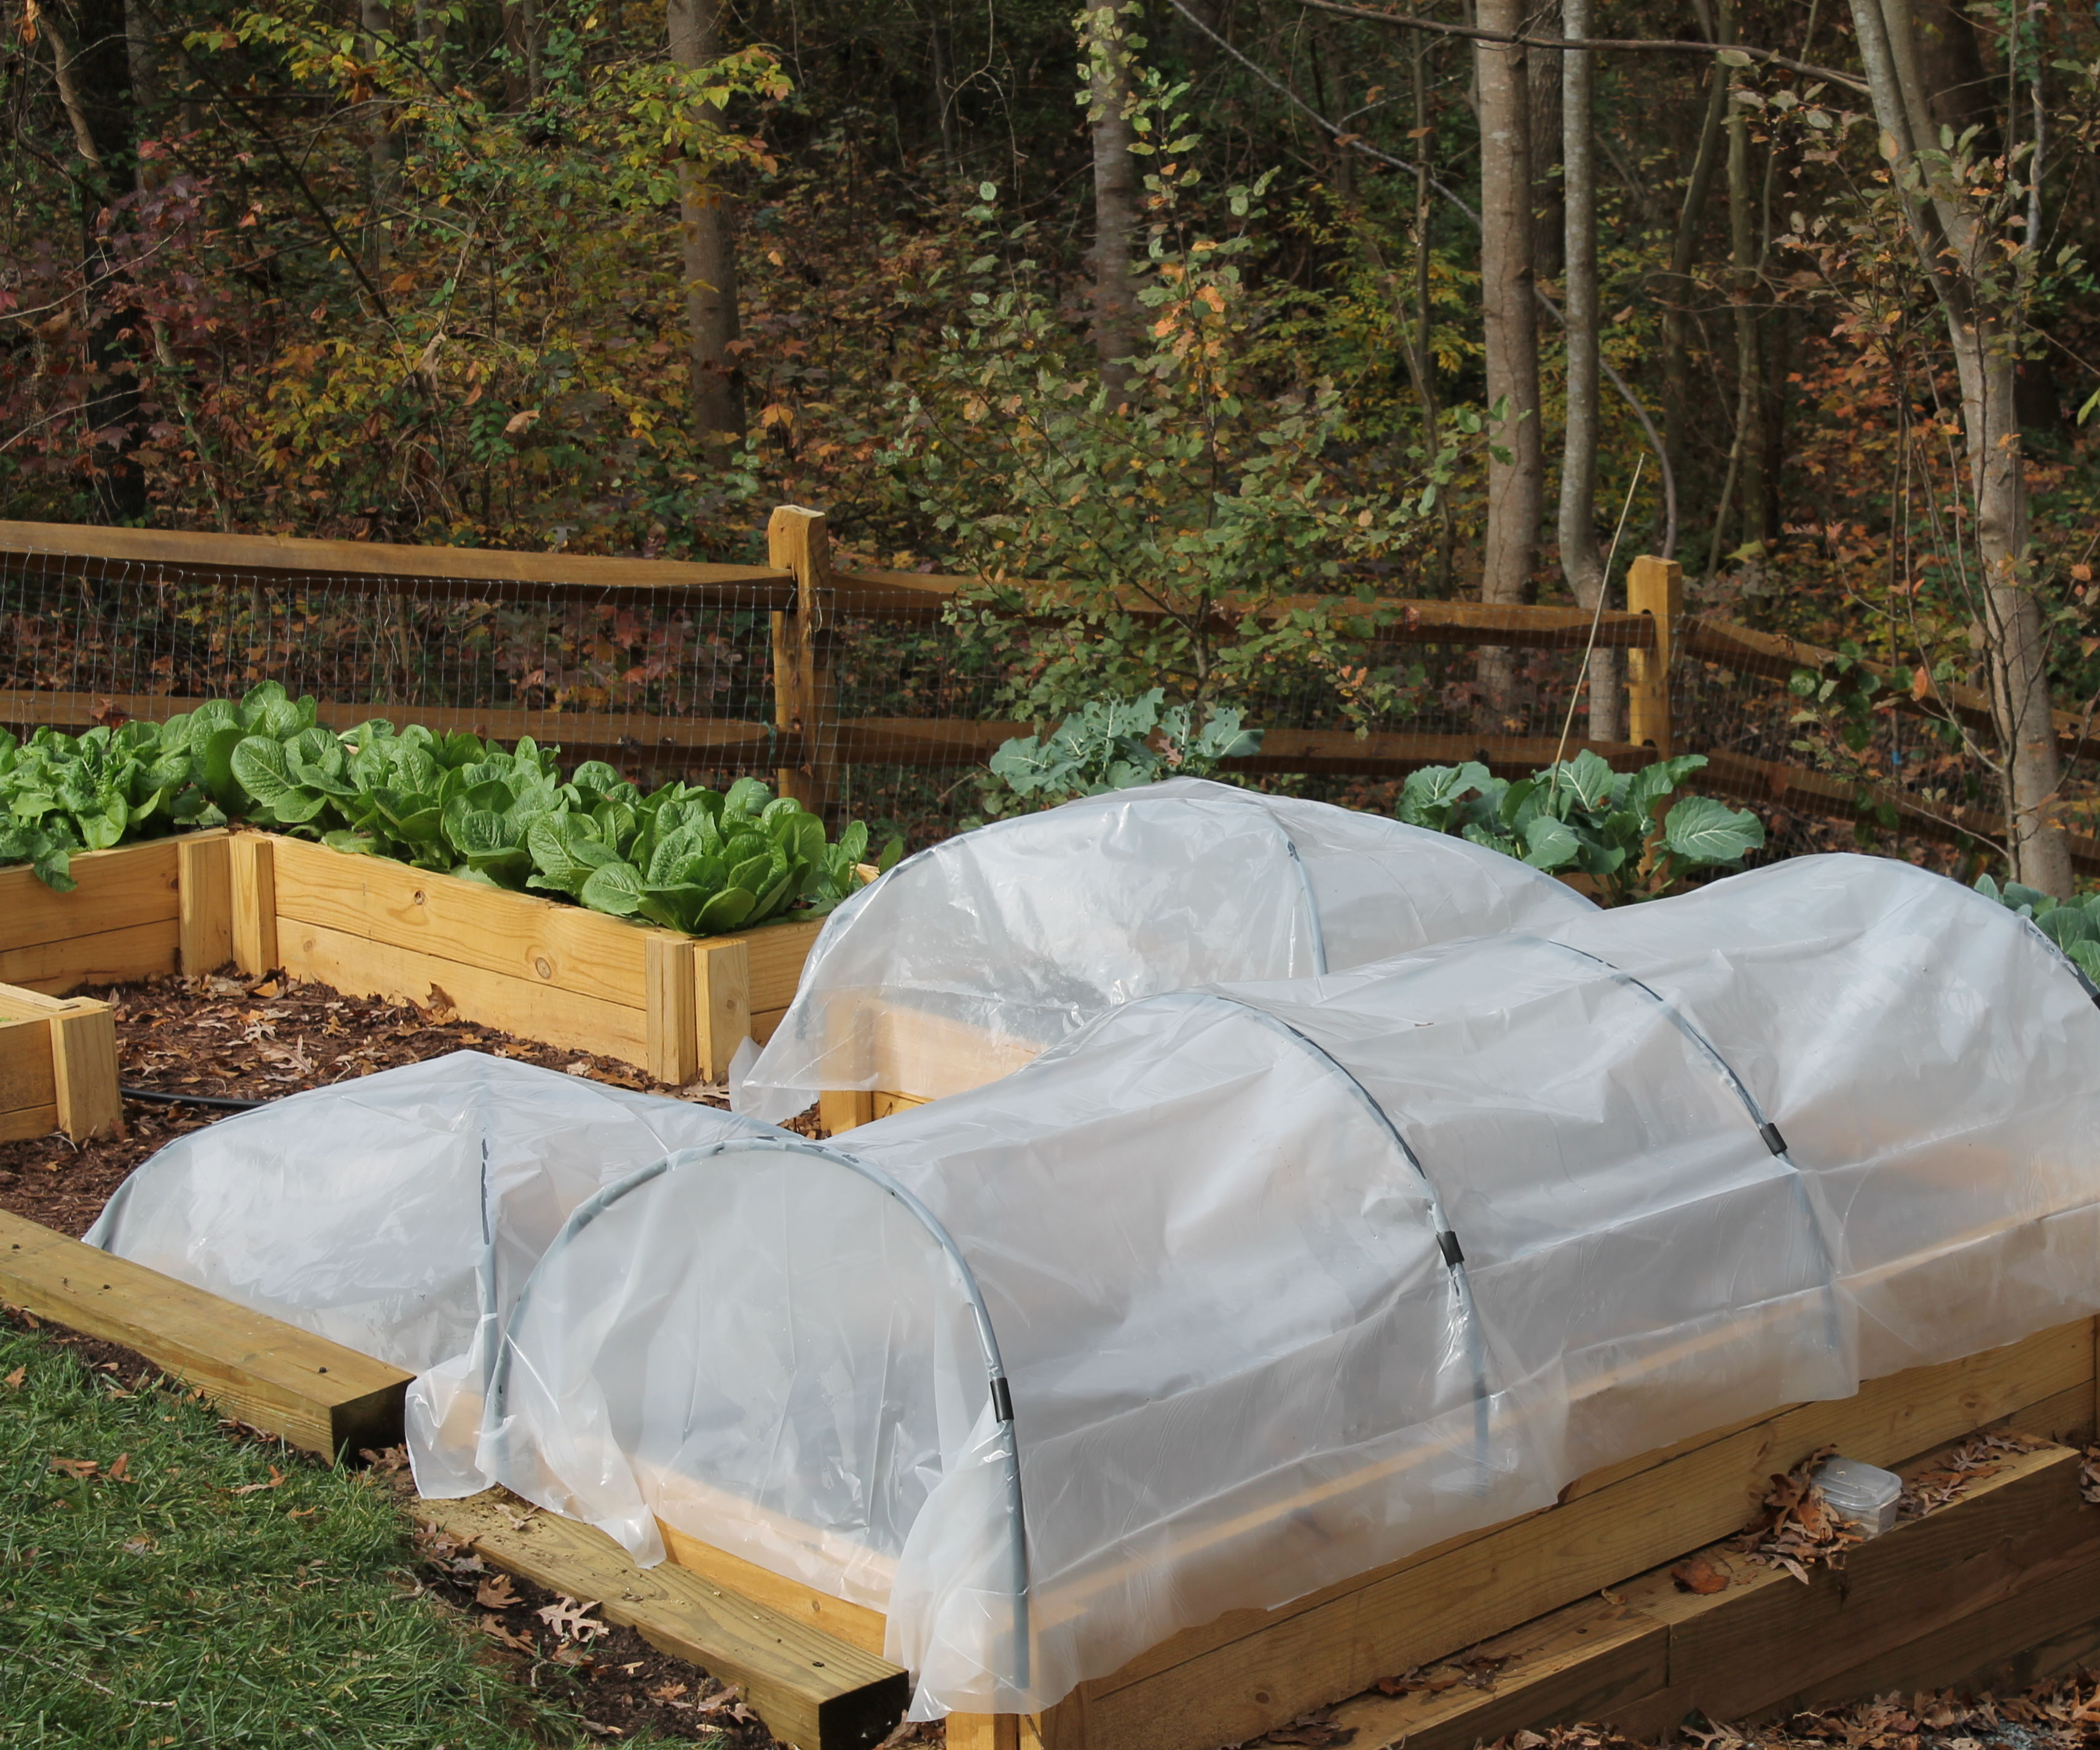 Simple Hoop Houses for Raised Beds